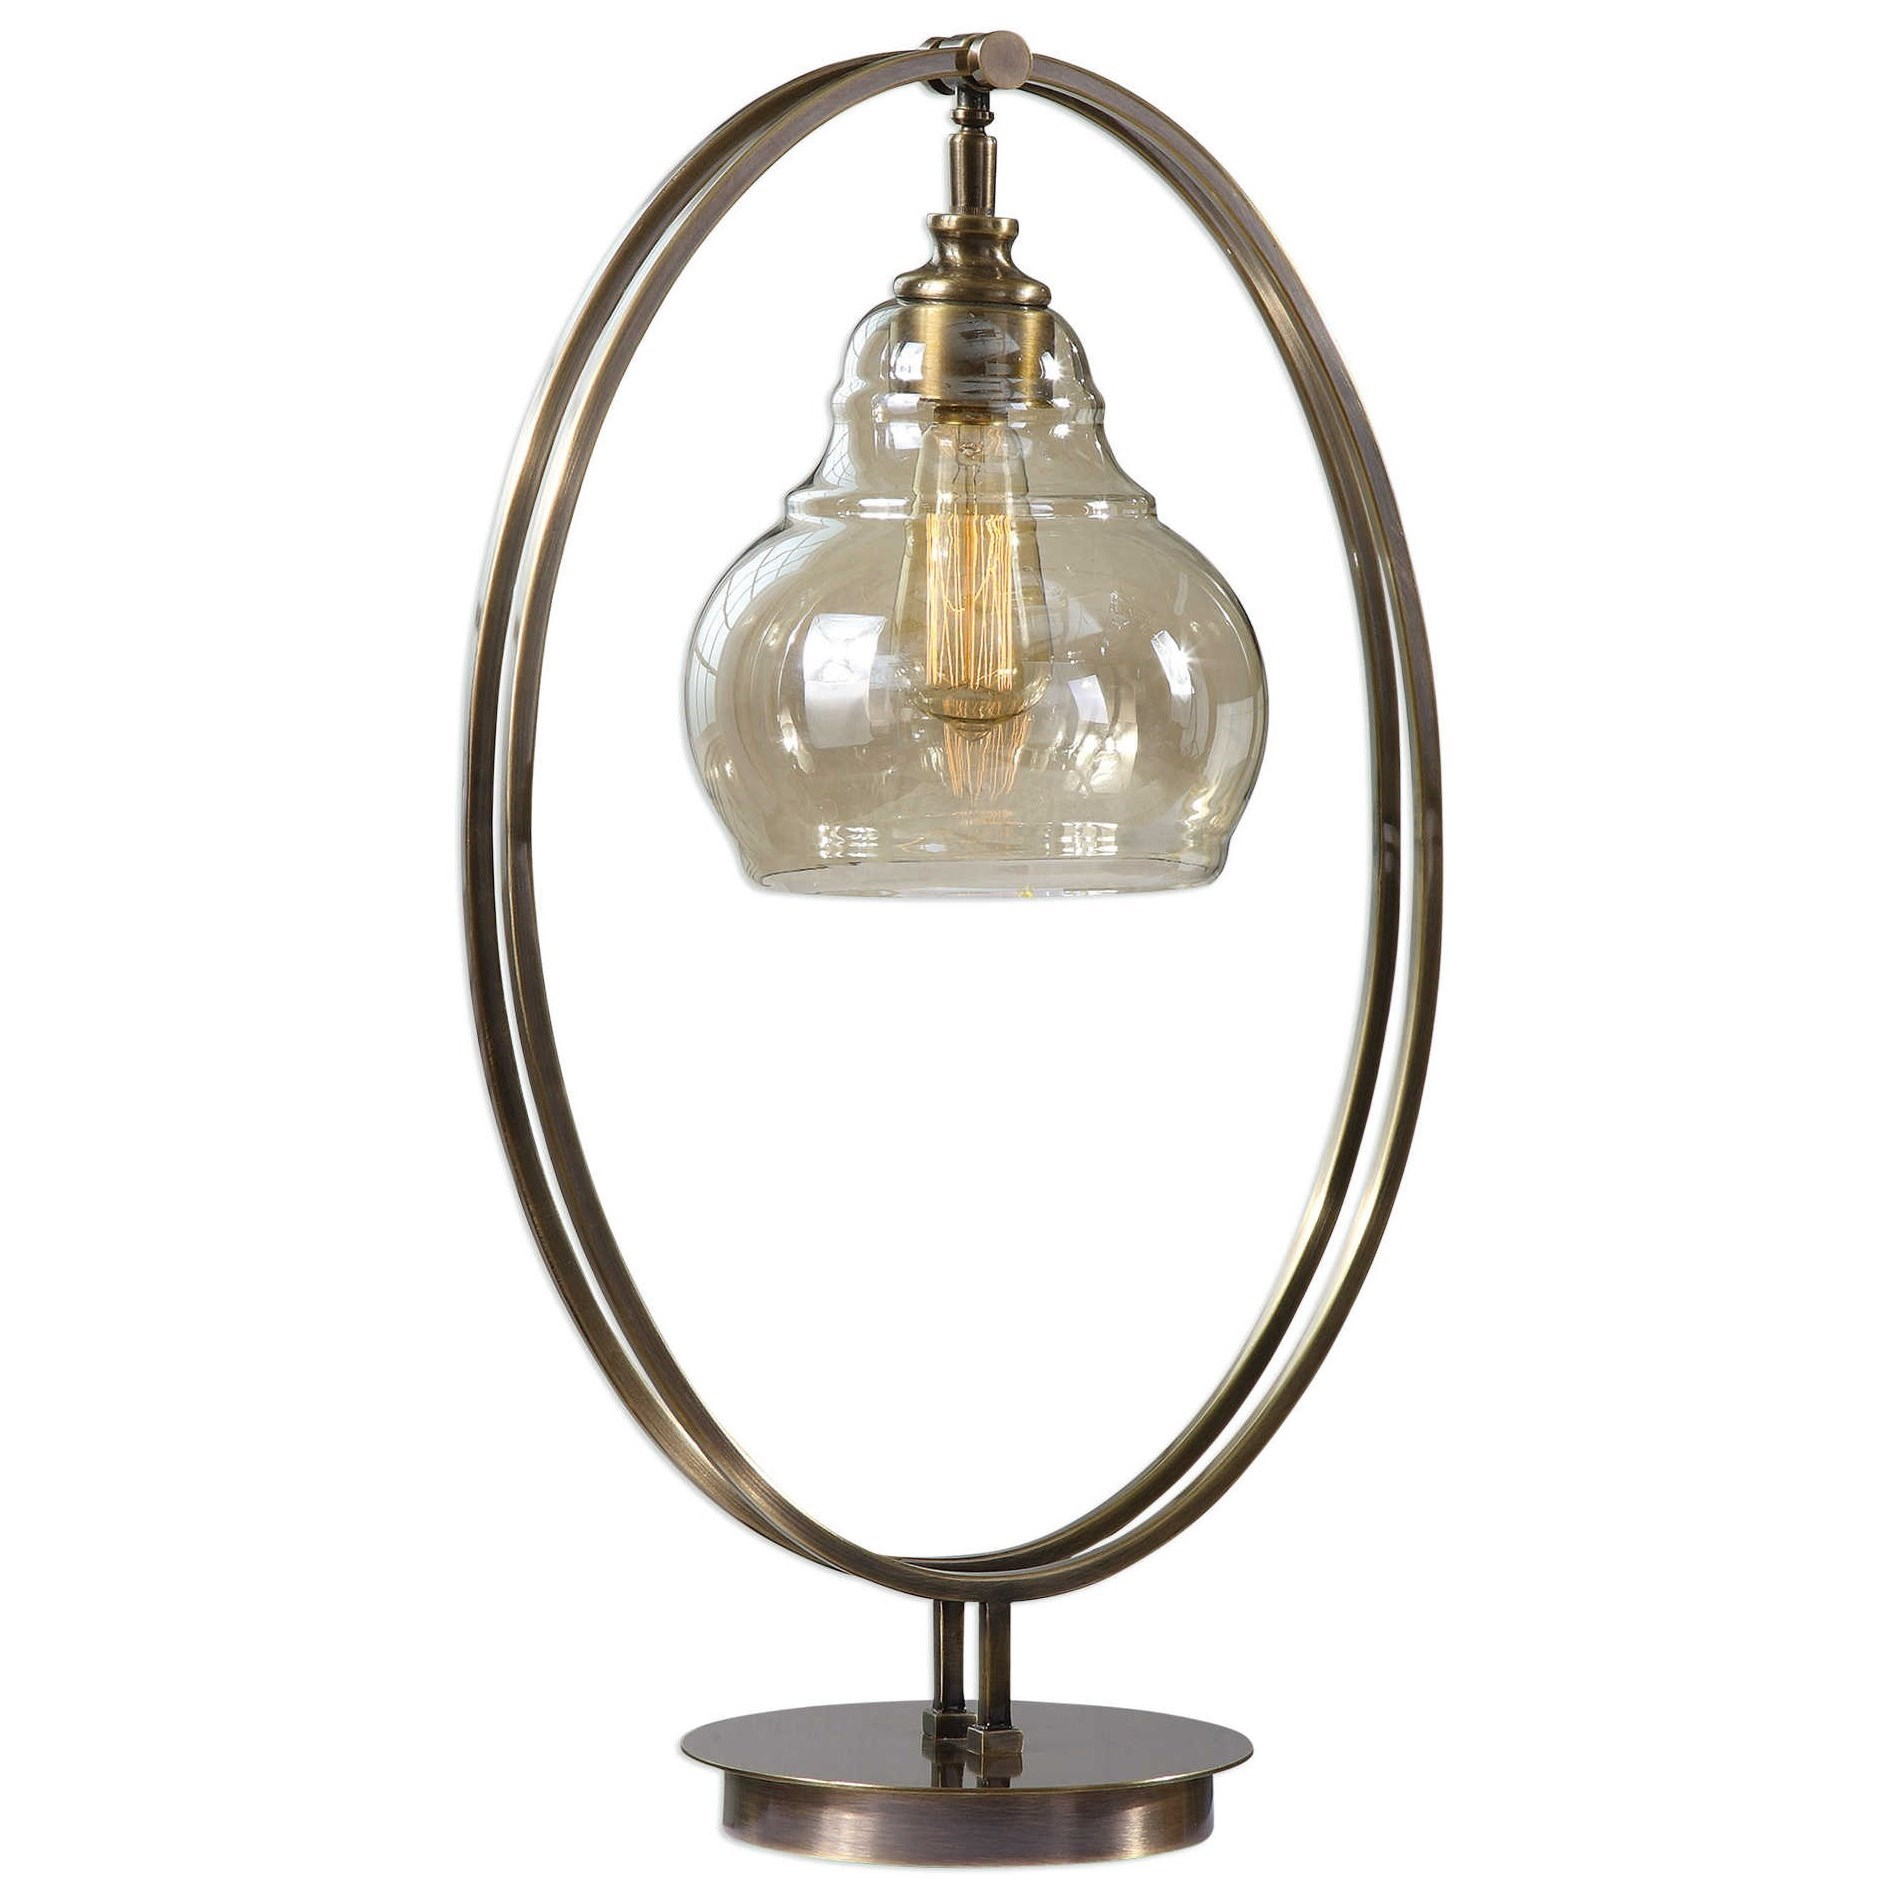 Elliptical Brass Edison Bulb Lamp